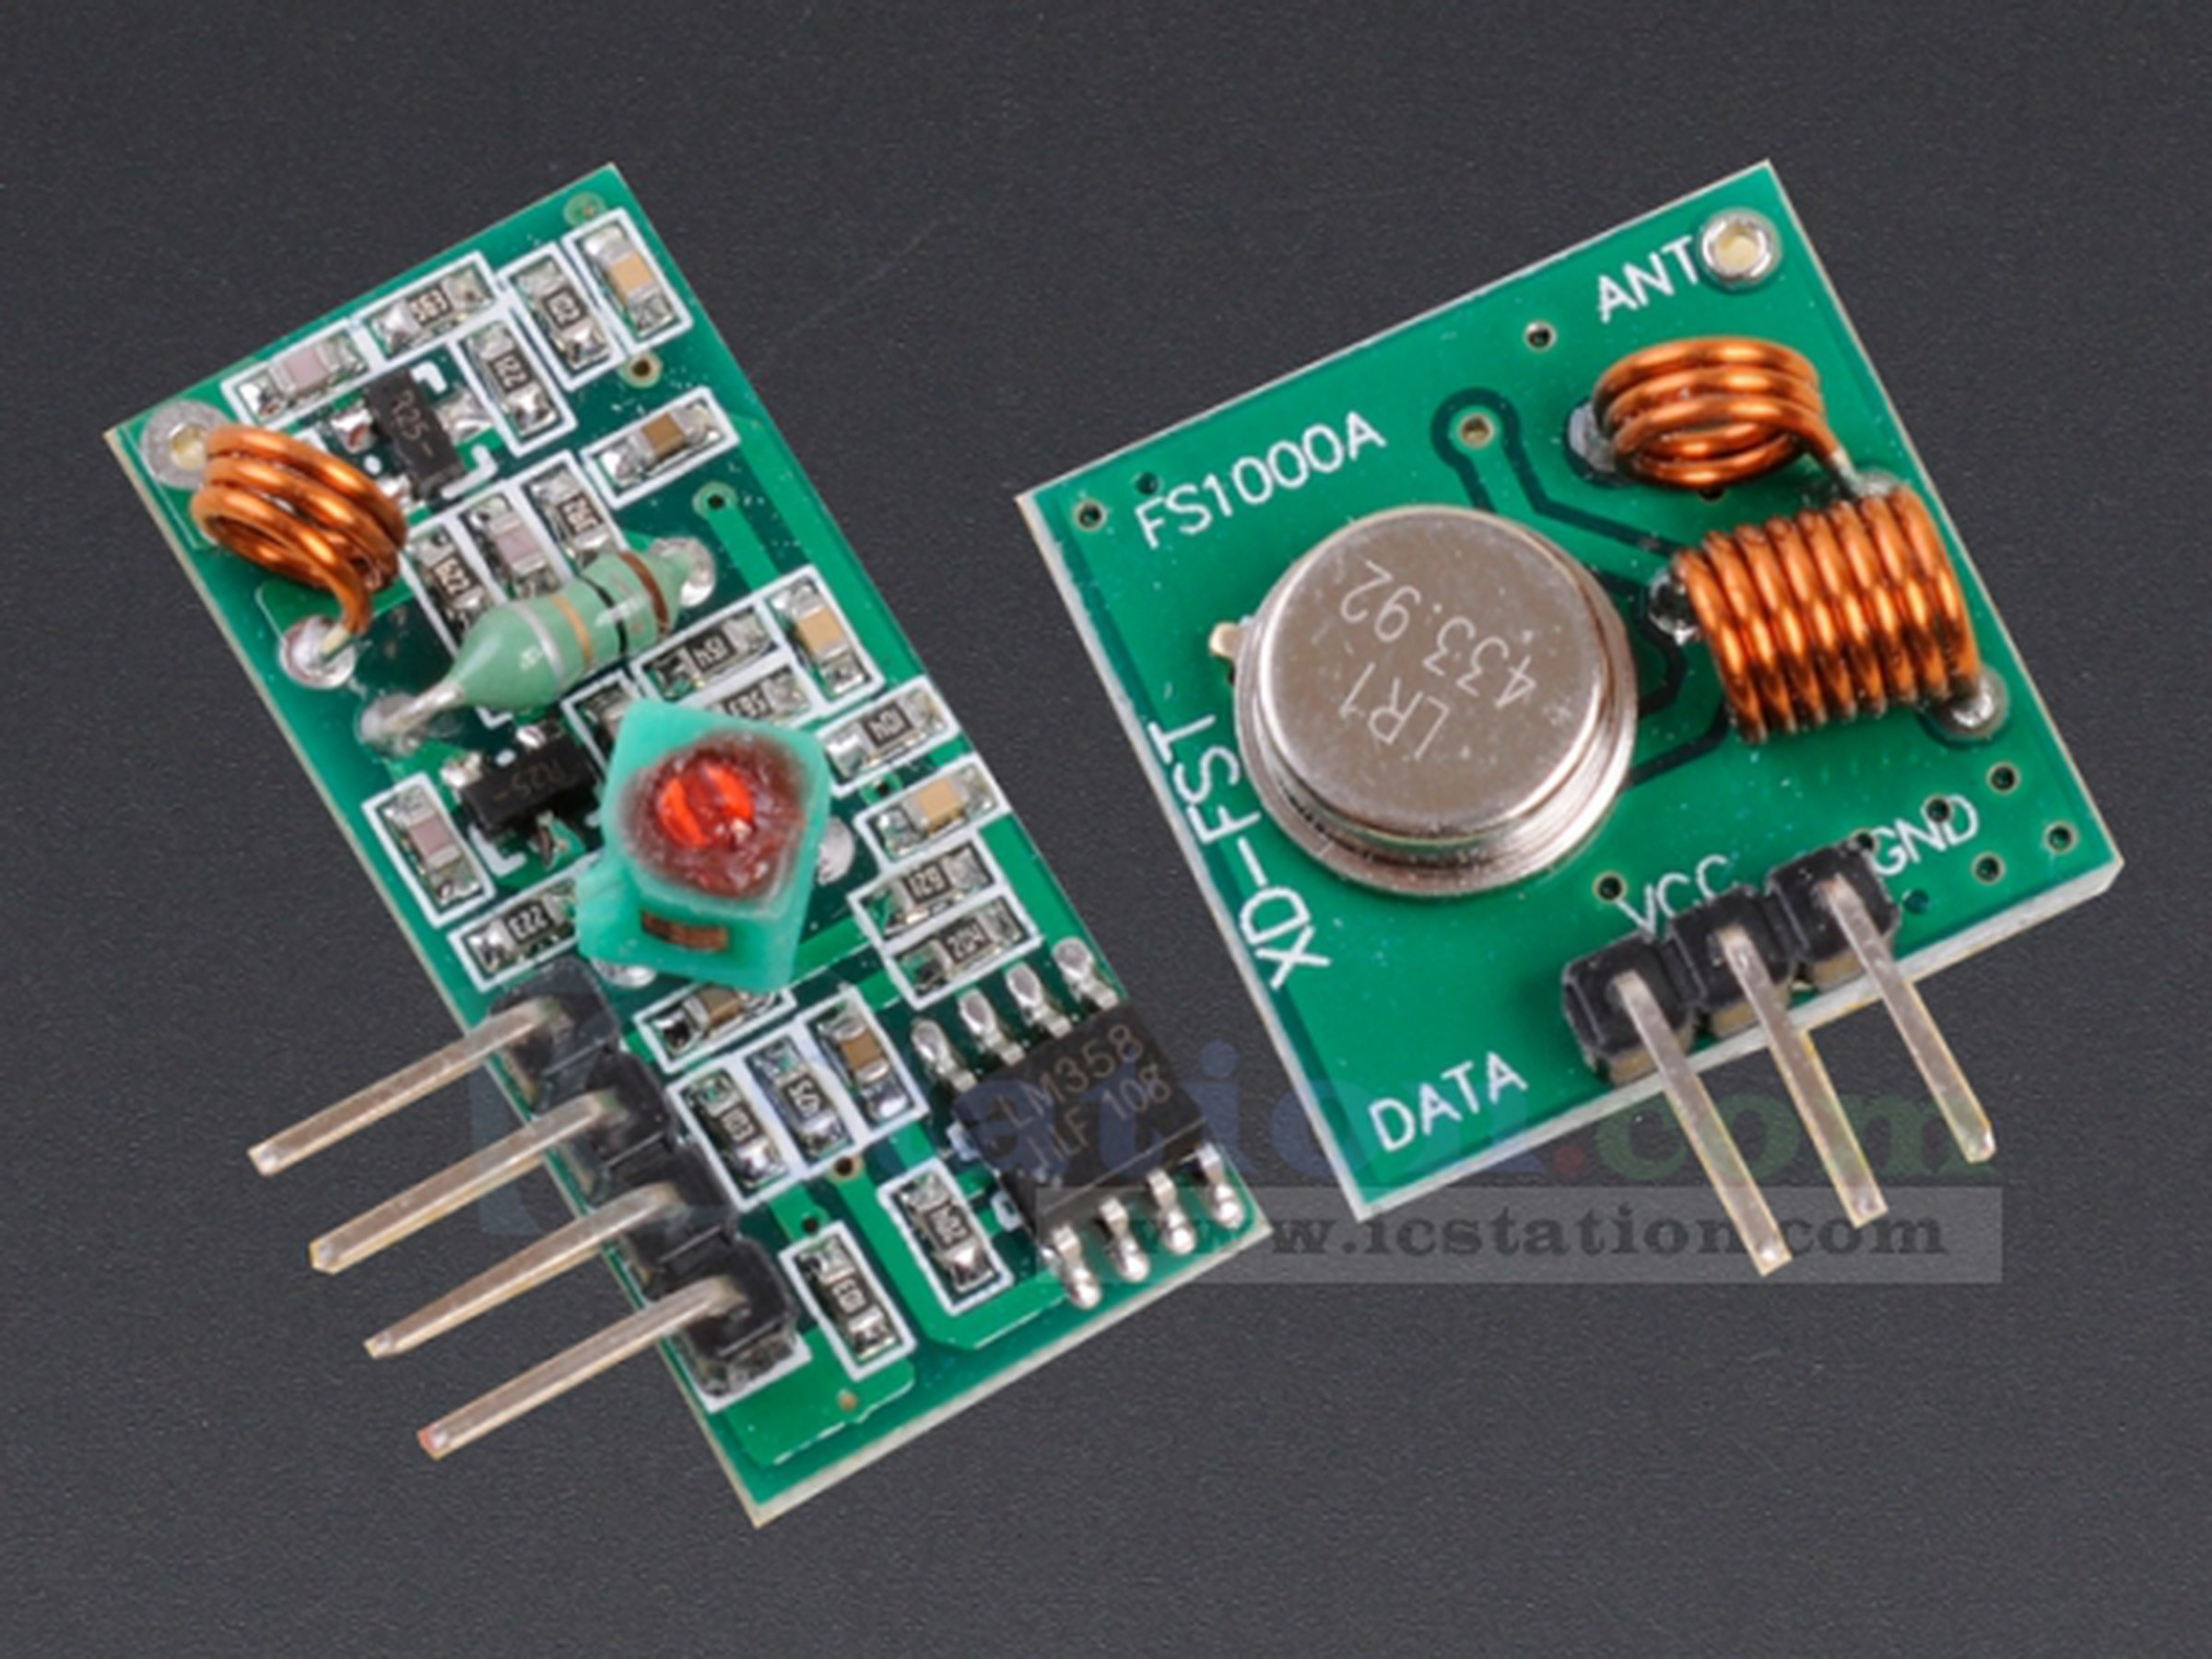 433mhz Rf Transmitter And Receiver Kit1402 From Icstation On Tindie How To Build Opamp Vhf Fm 1